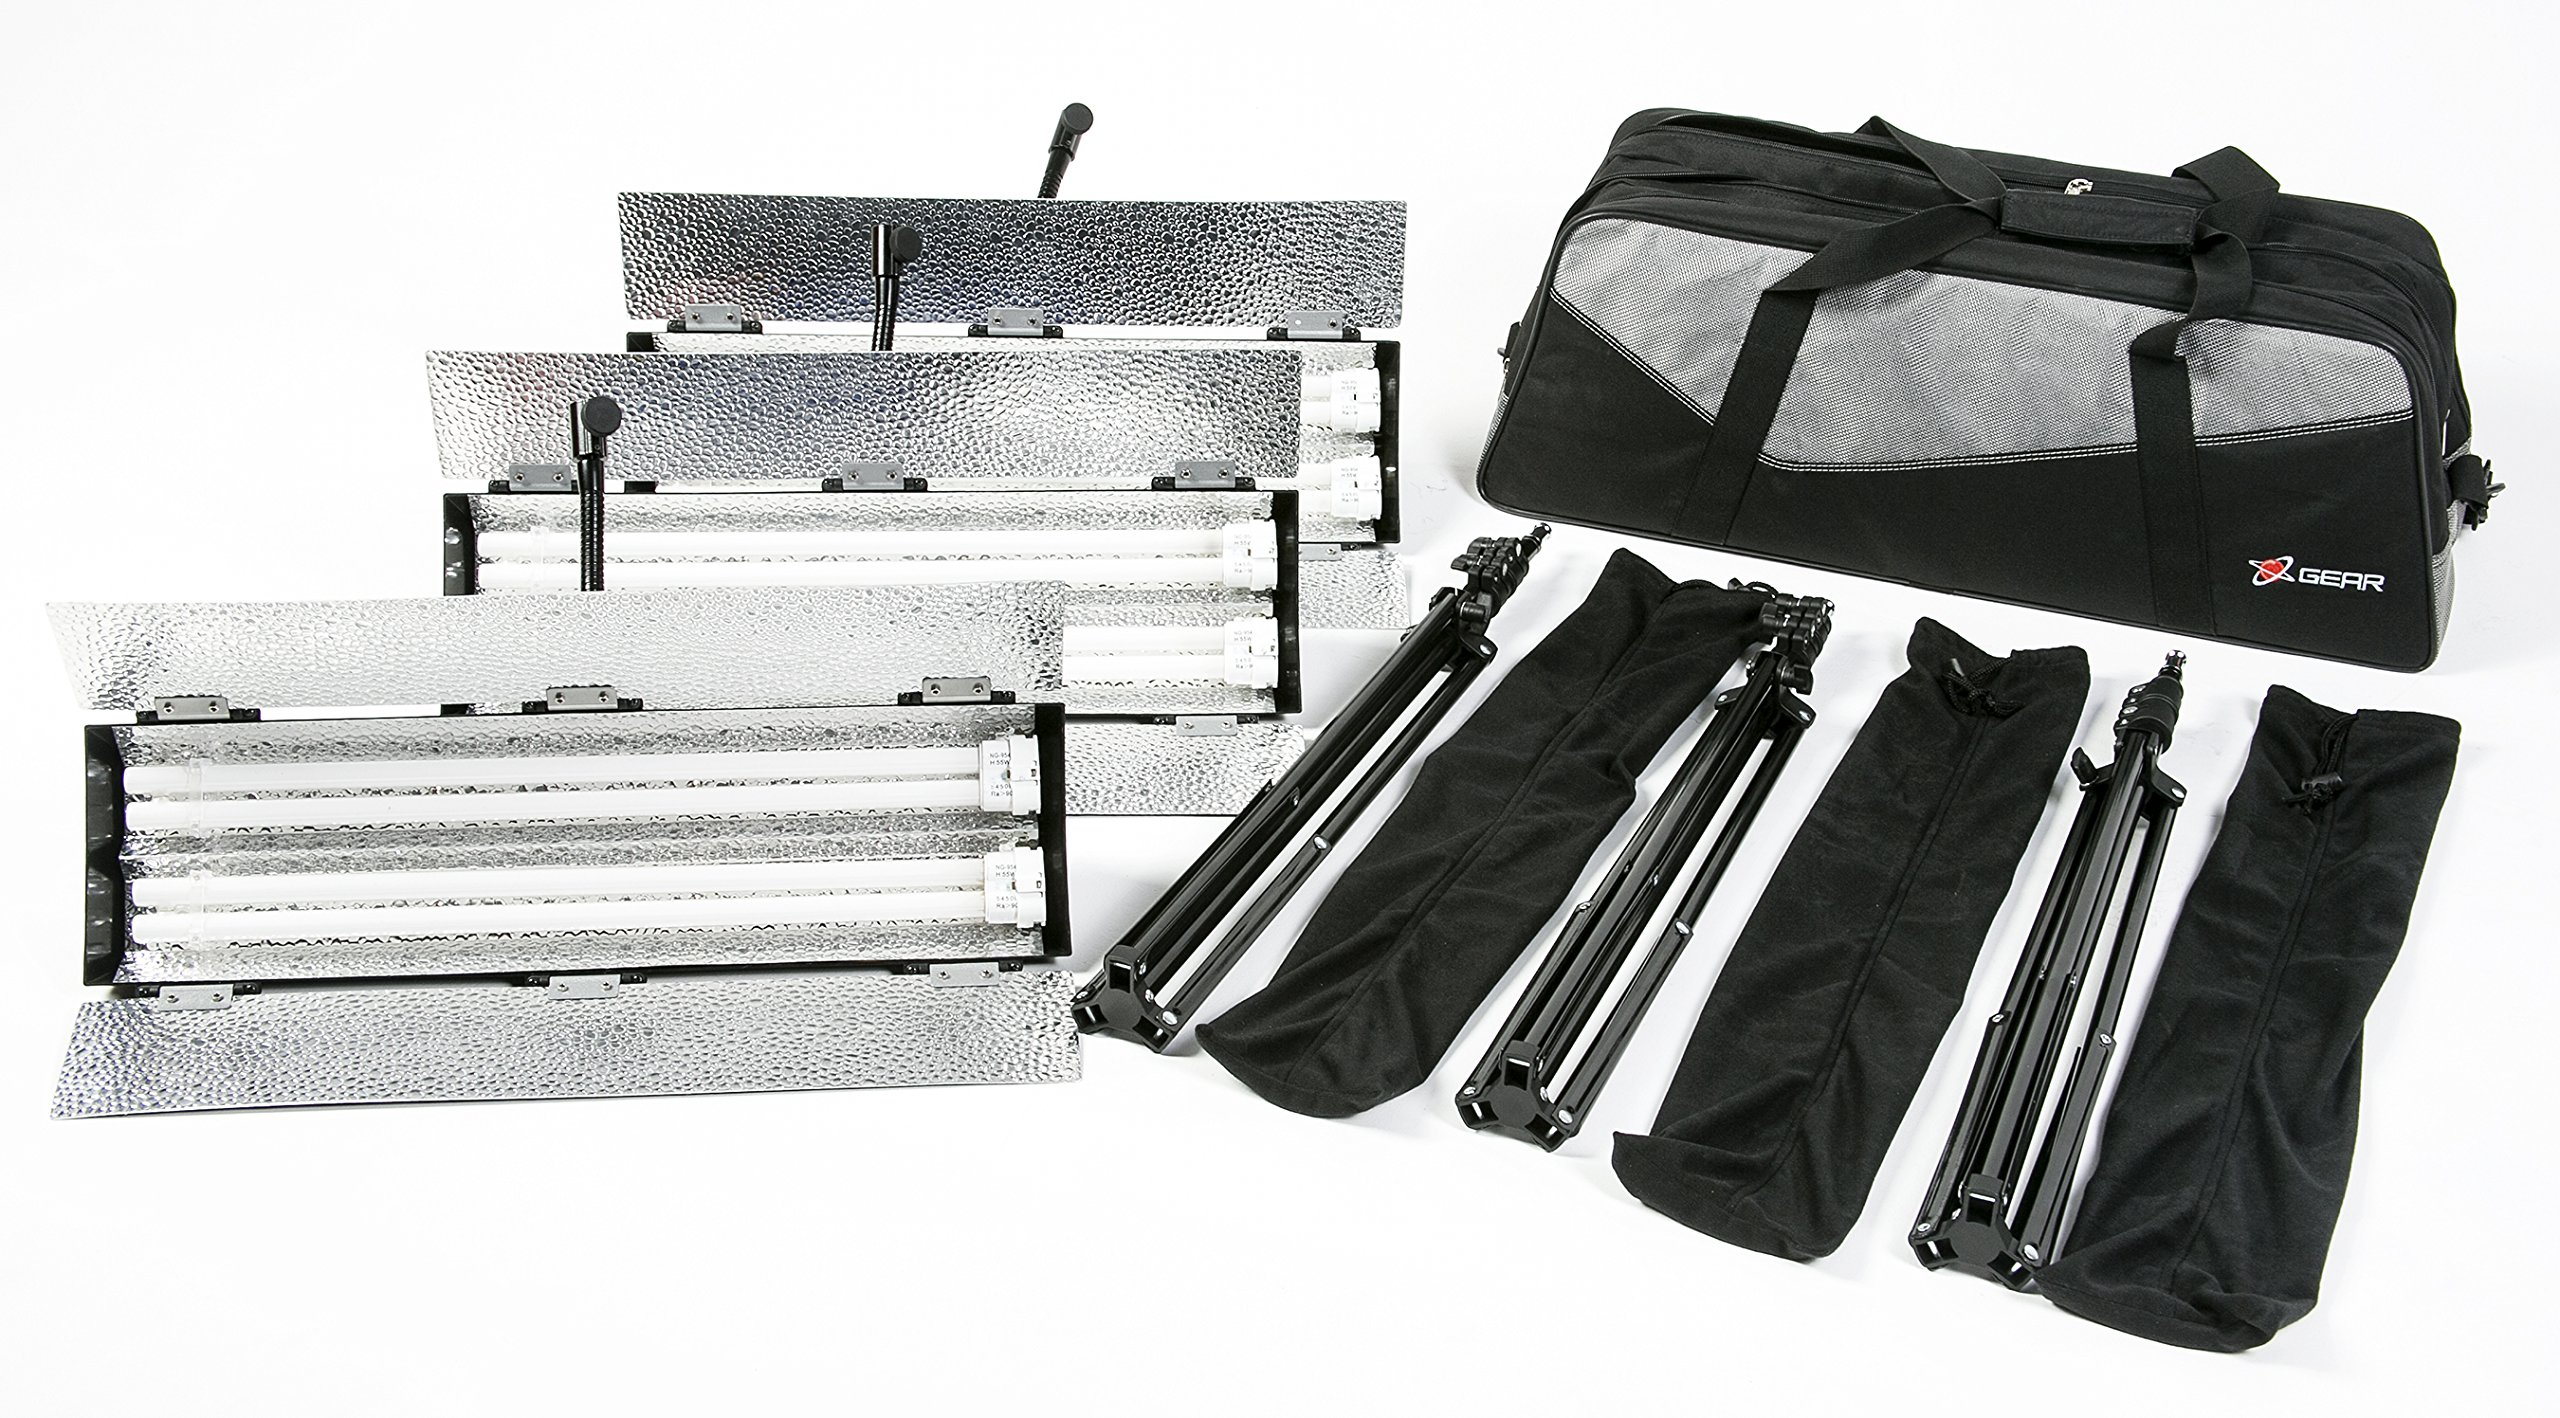 Digital Juice Aura 3-Point Lighting Kit with 3 Fluorescent Lights, 3 Stands, and Deluxe Carry Bag